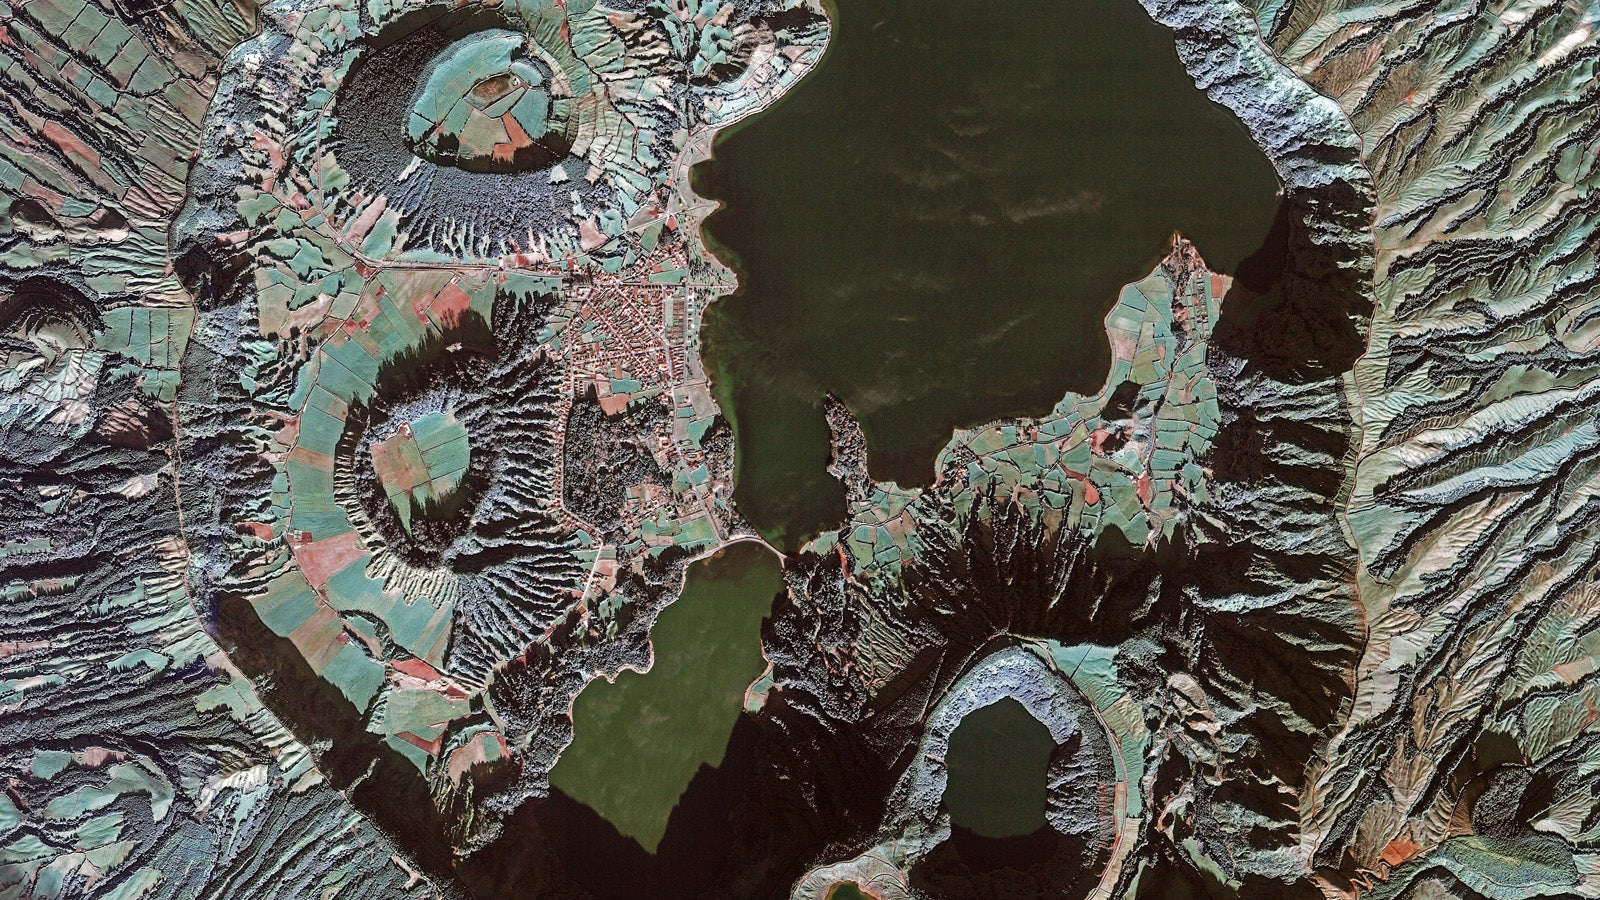 Living on an Extinct Volcano Looks Amazing From Space